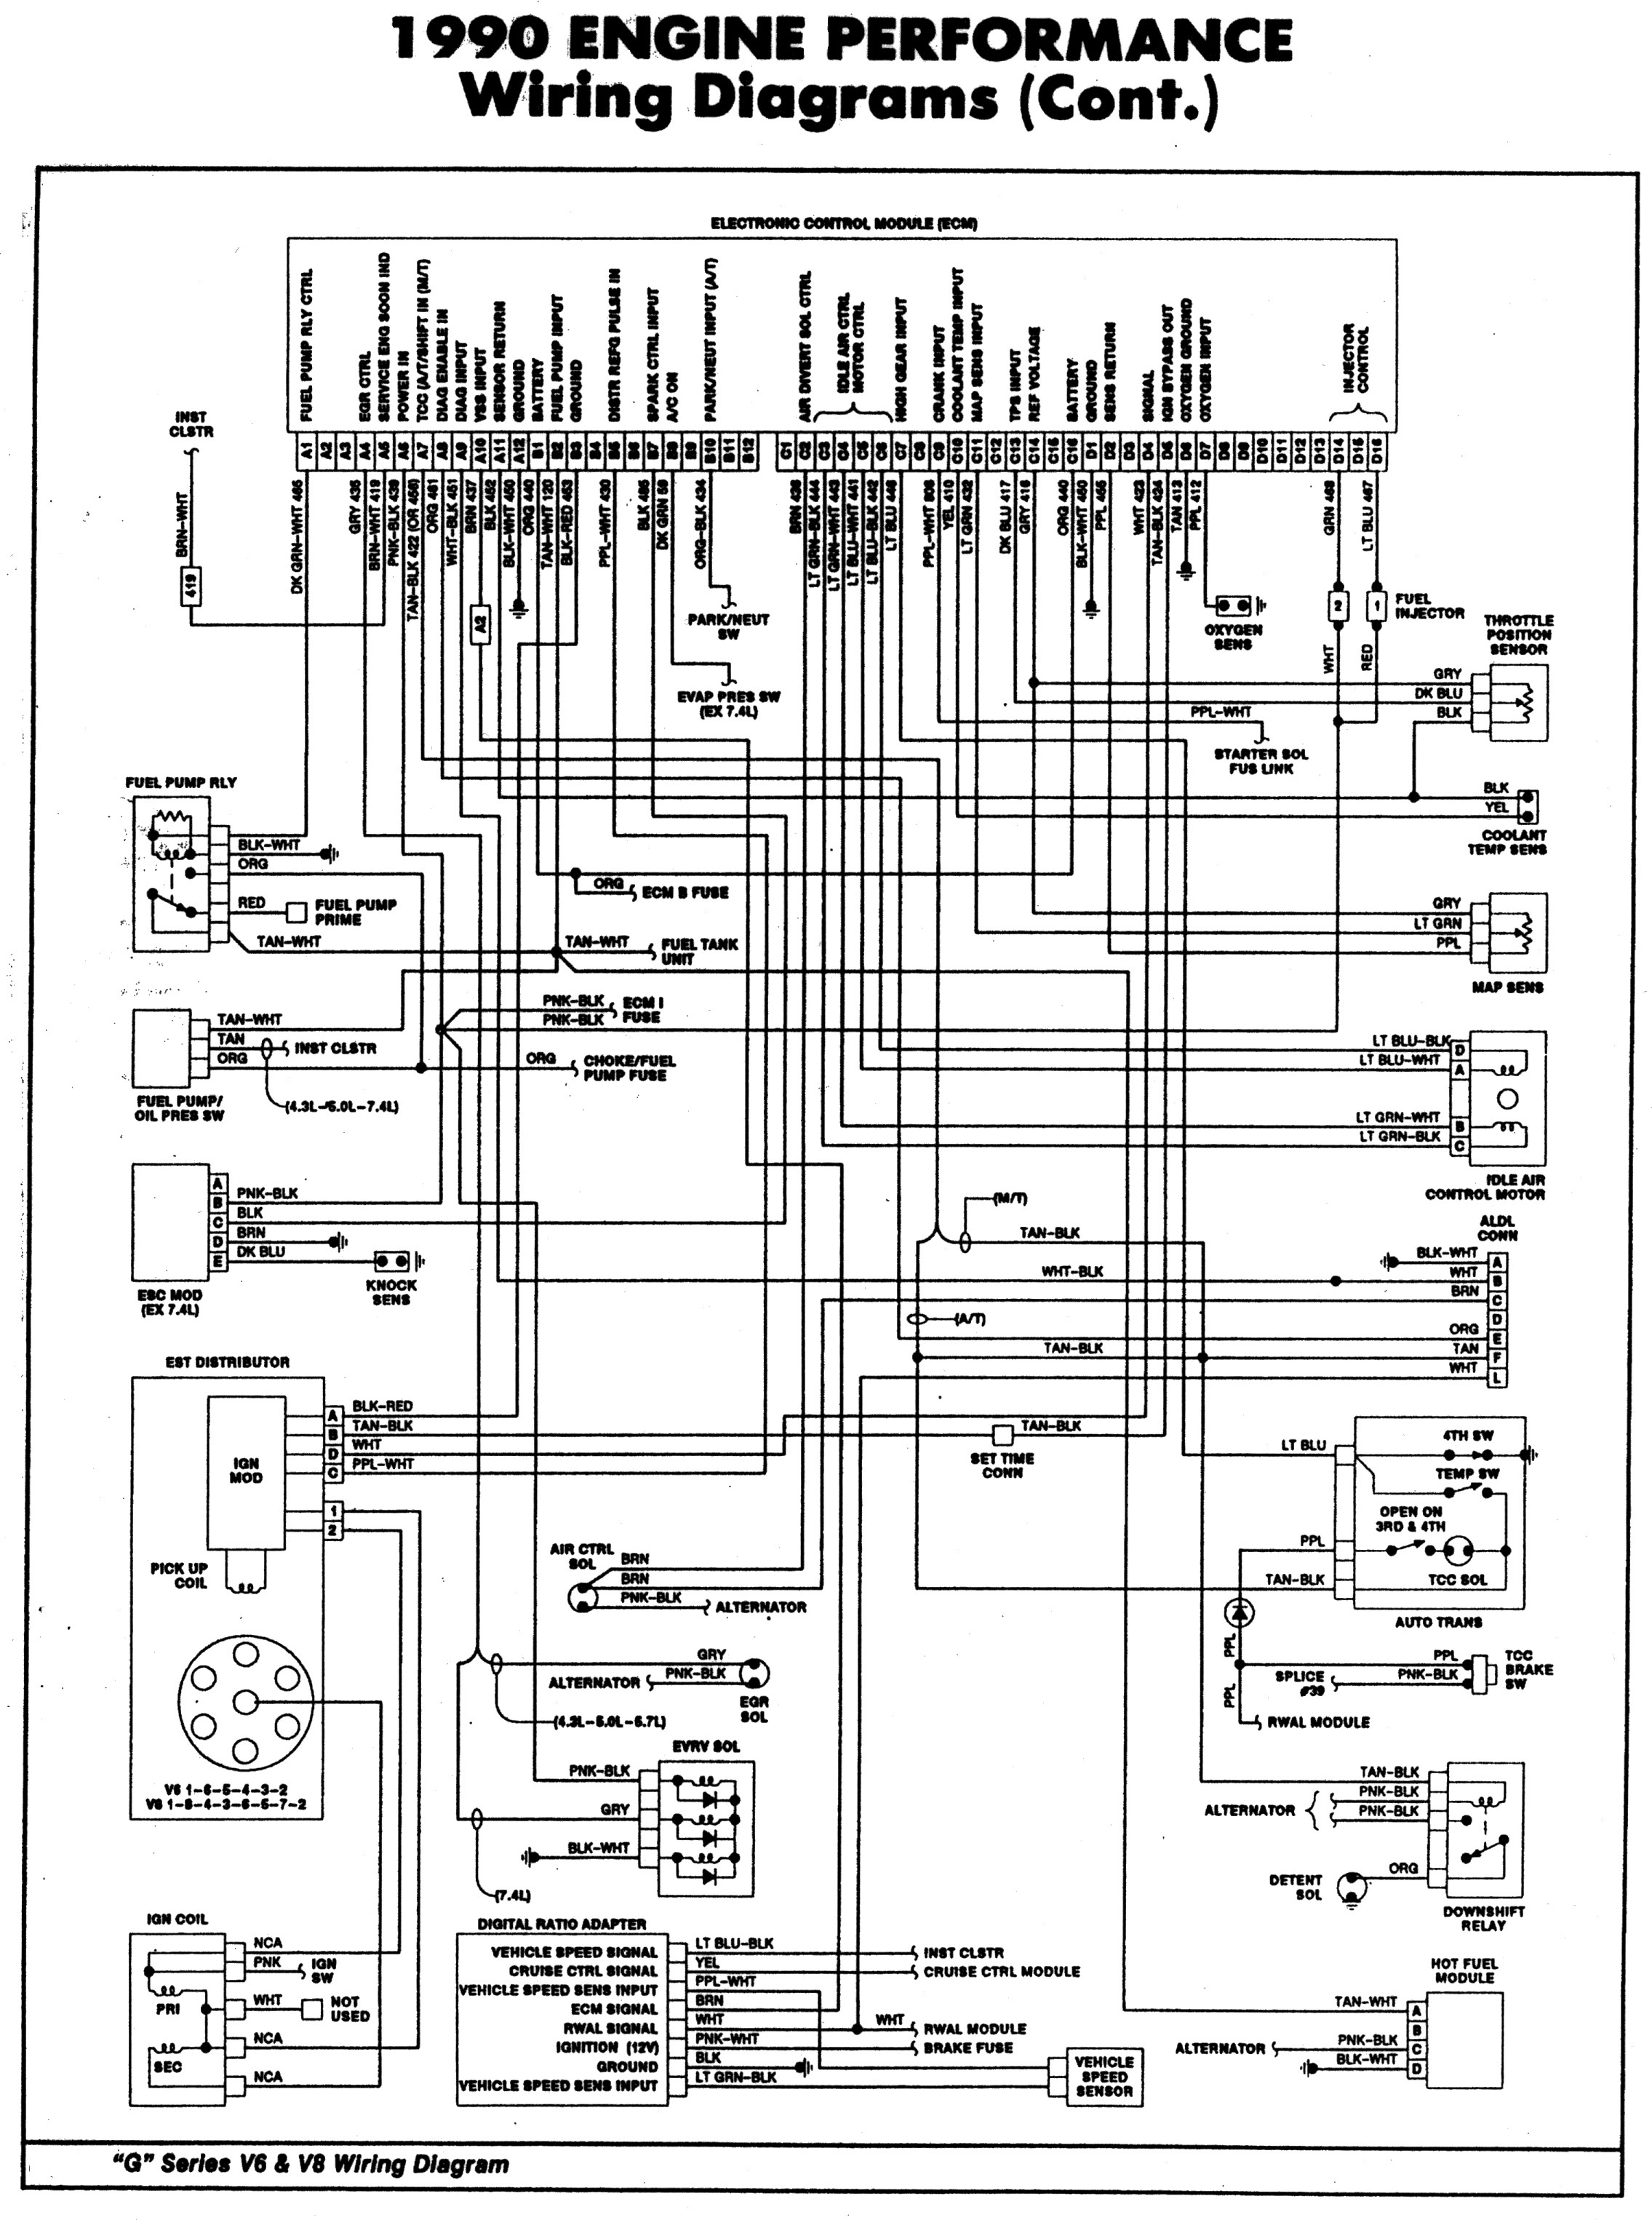 [DIAGRAM_4FR]  82253 88 Chevy K1500 Wiring Diagram P I | Wiring Library | 1988 Chevrolet K2500 Wiring Diagram |  | Wiring Library